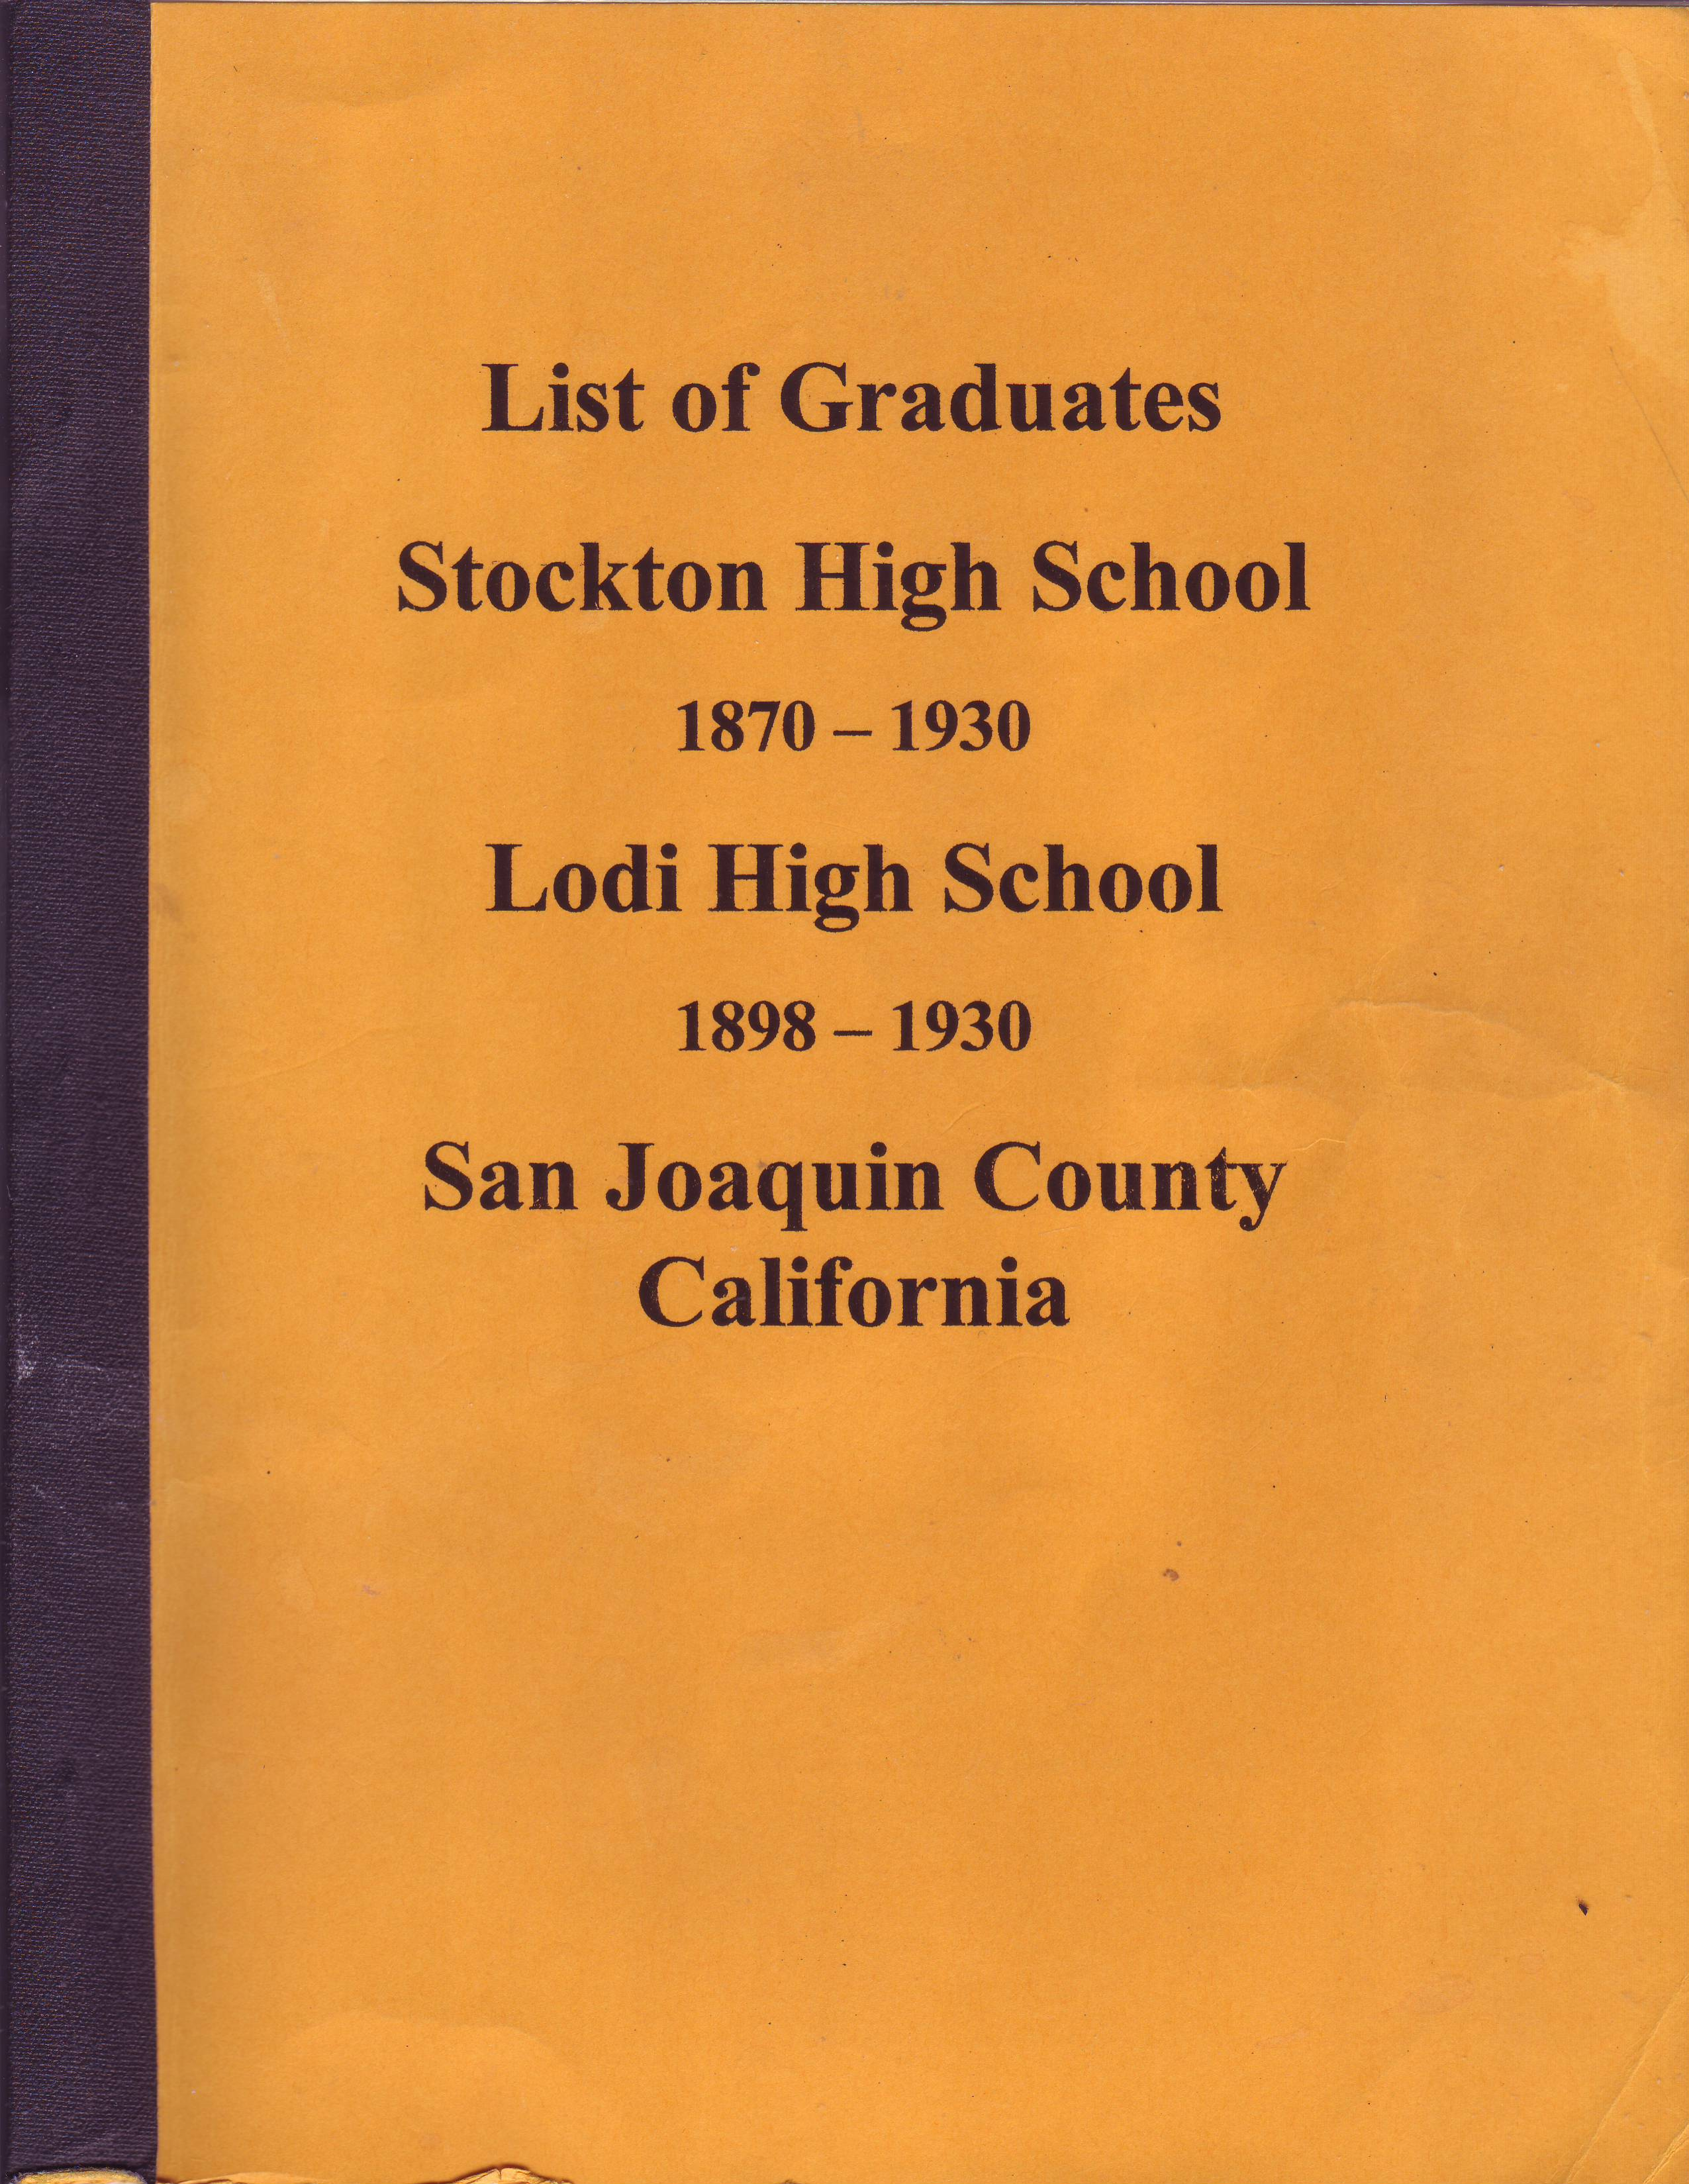 List of Graduates, Stockton High School, 1870-1930, Lodi High School, 1898-1930, San Joaquin County,